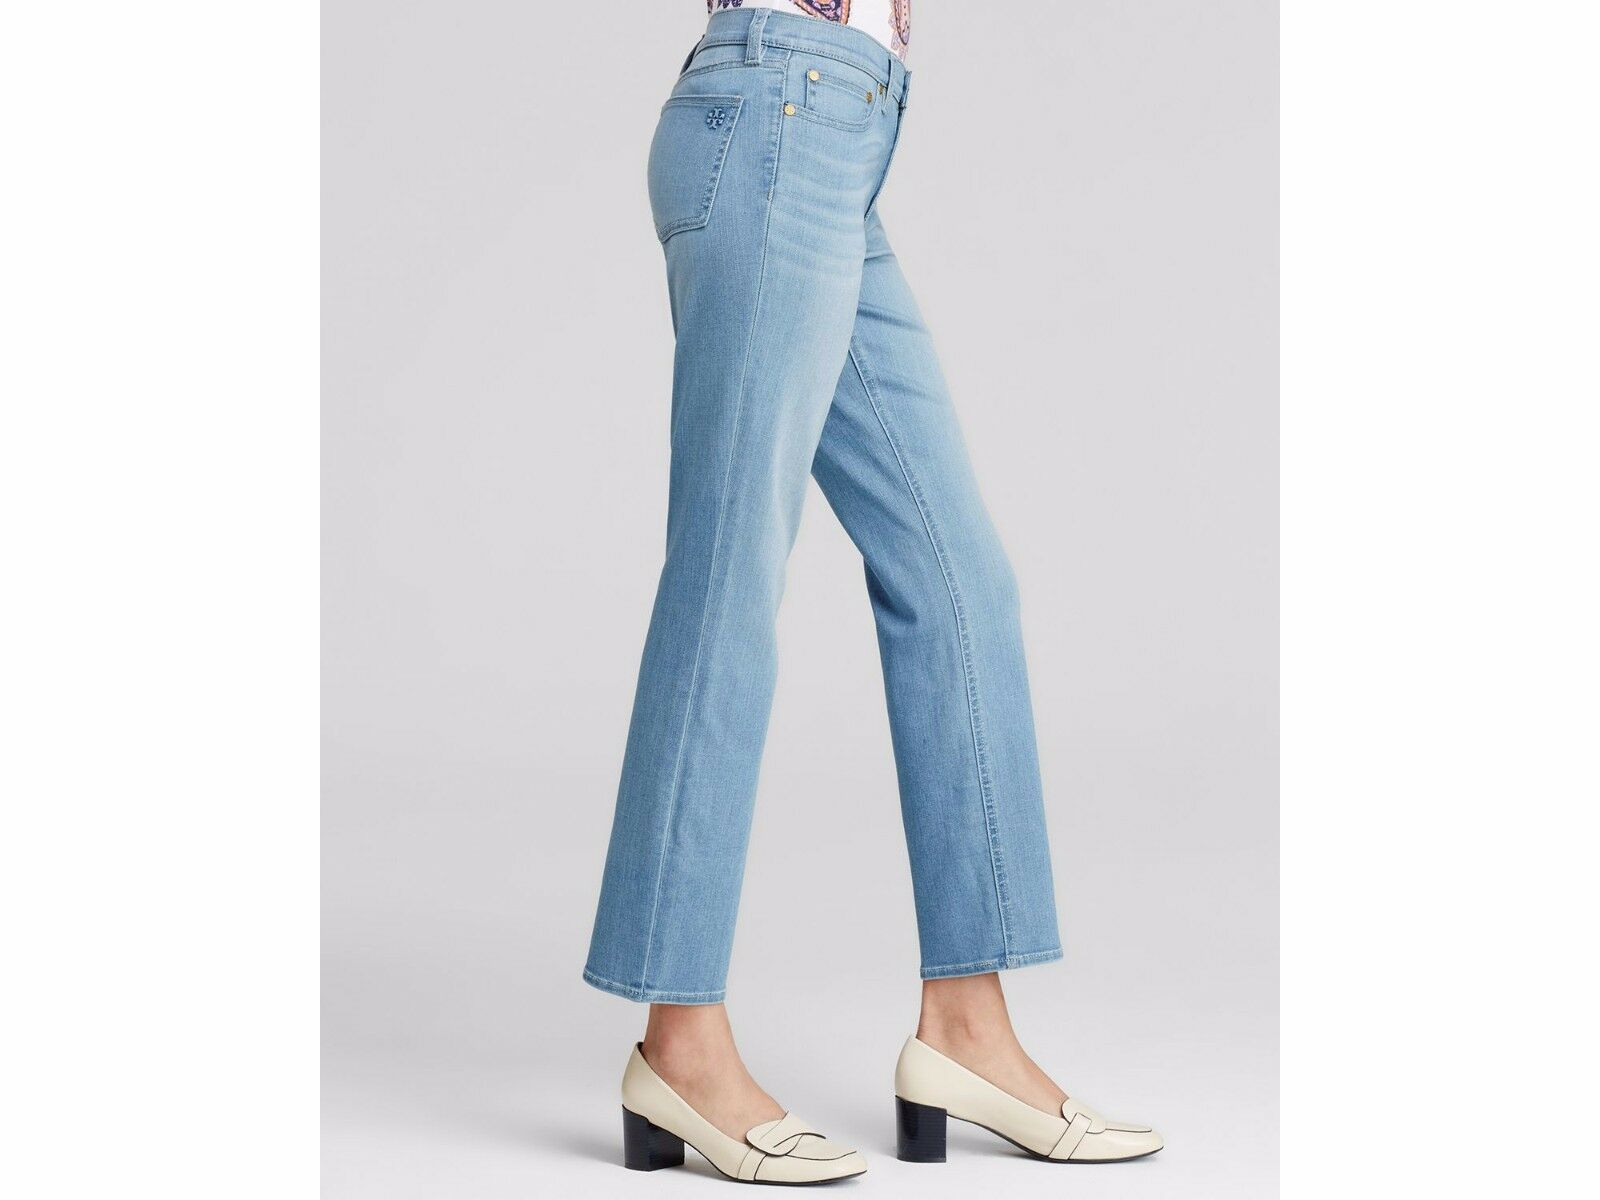 195 NEW TORY BURCH Cropped Straight Leg Jeans Ankle bluee Slate Wash STRETCH 26